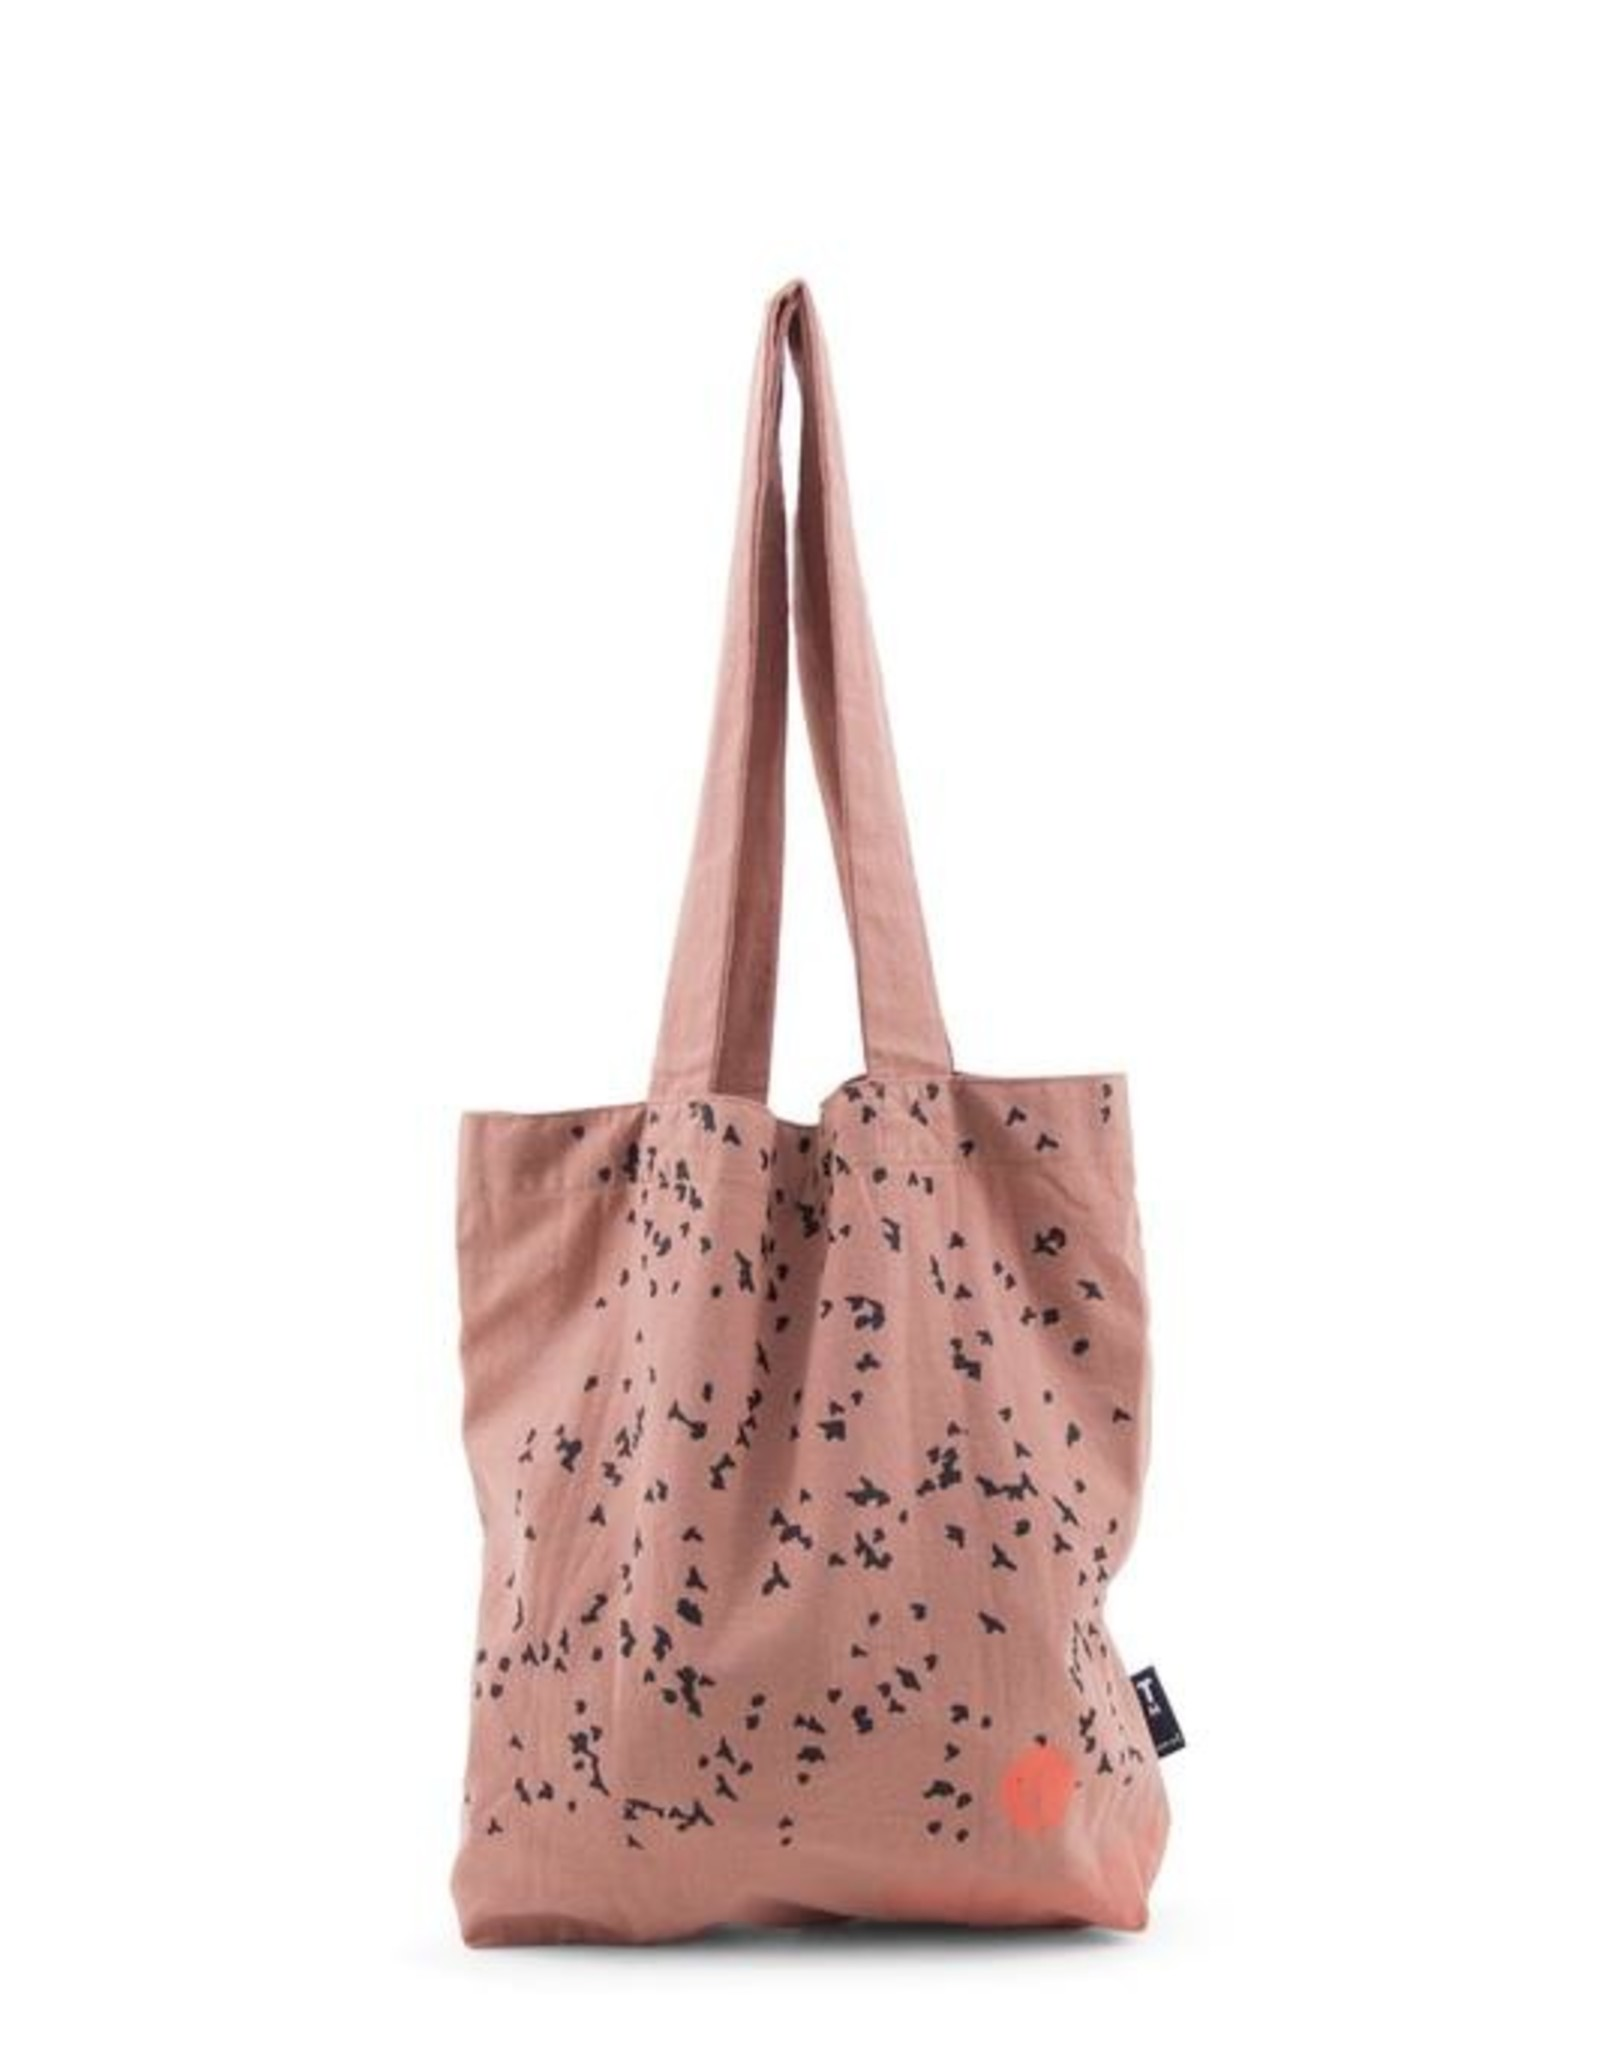 LInen Tote With Pouch Two Options